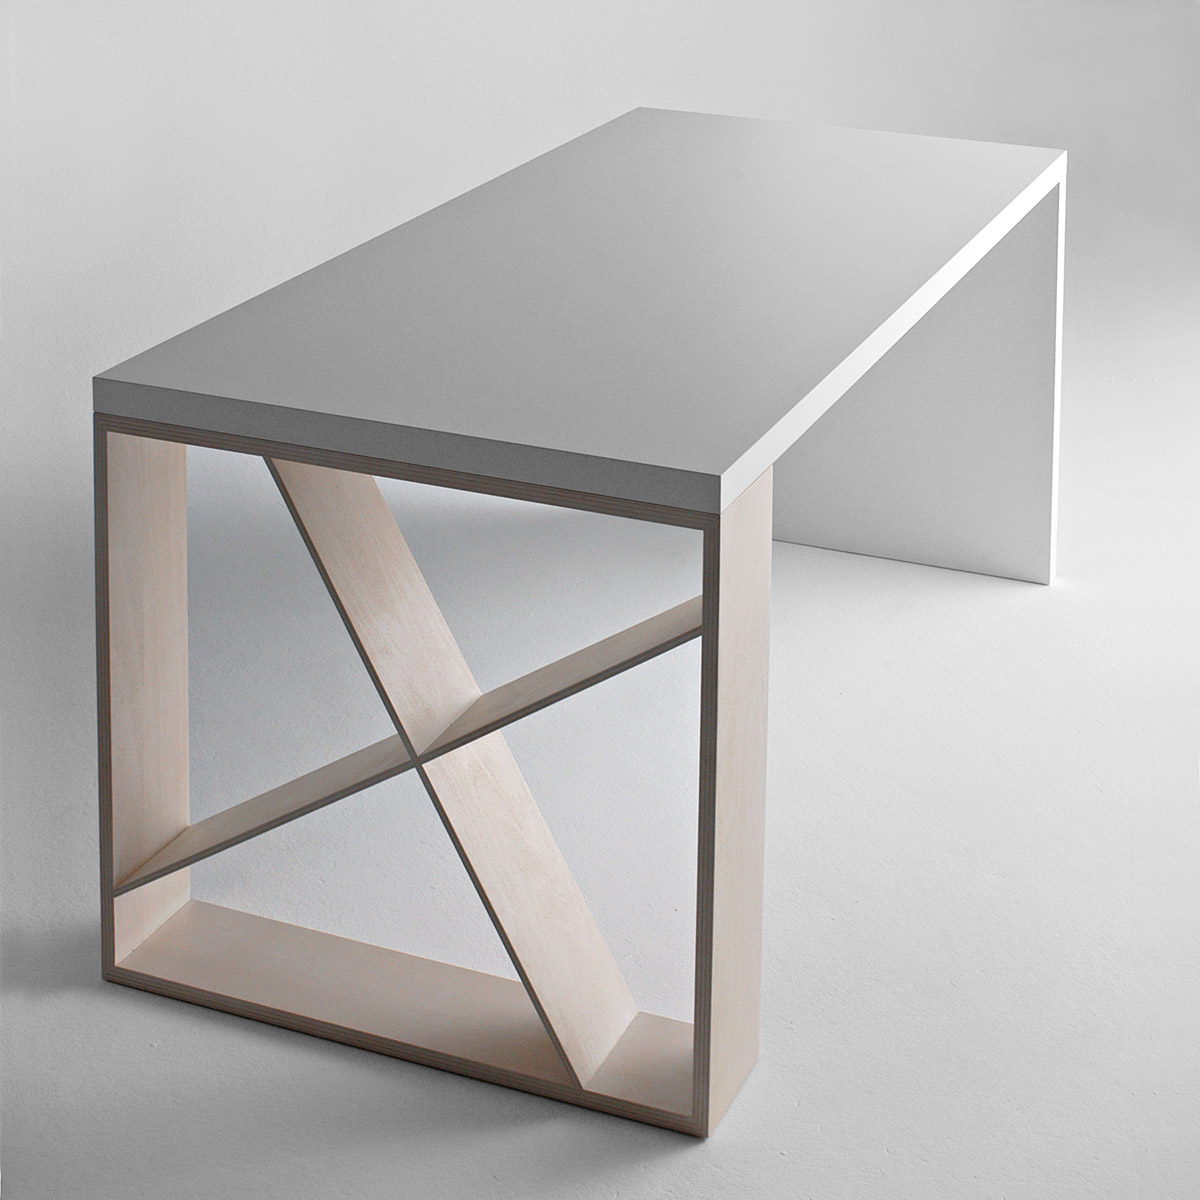 J Table desk from Horm, designed by Jean-François Gomrée